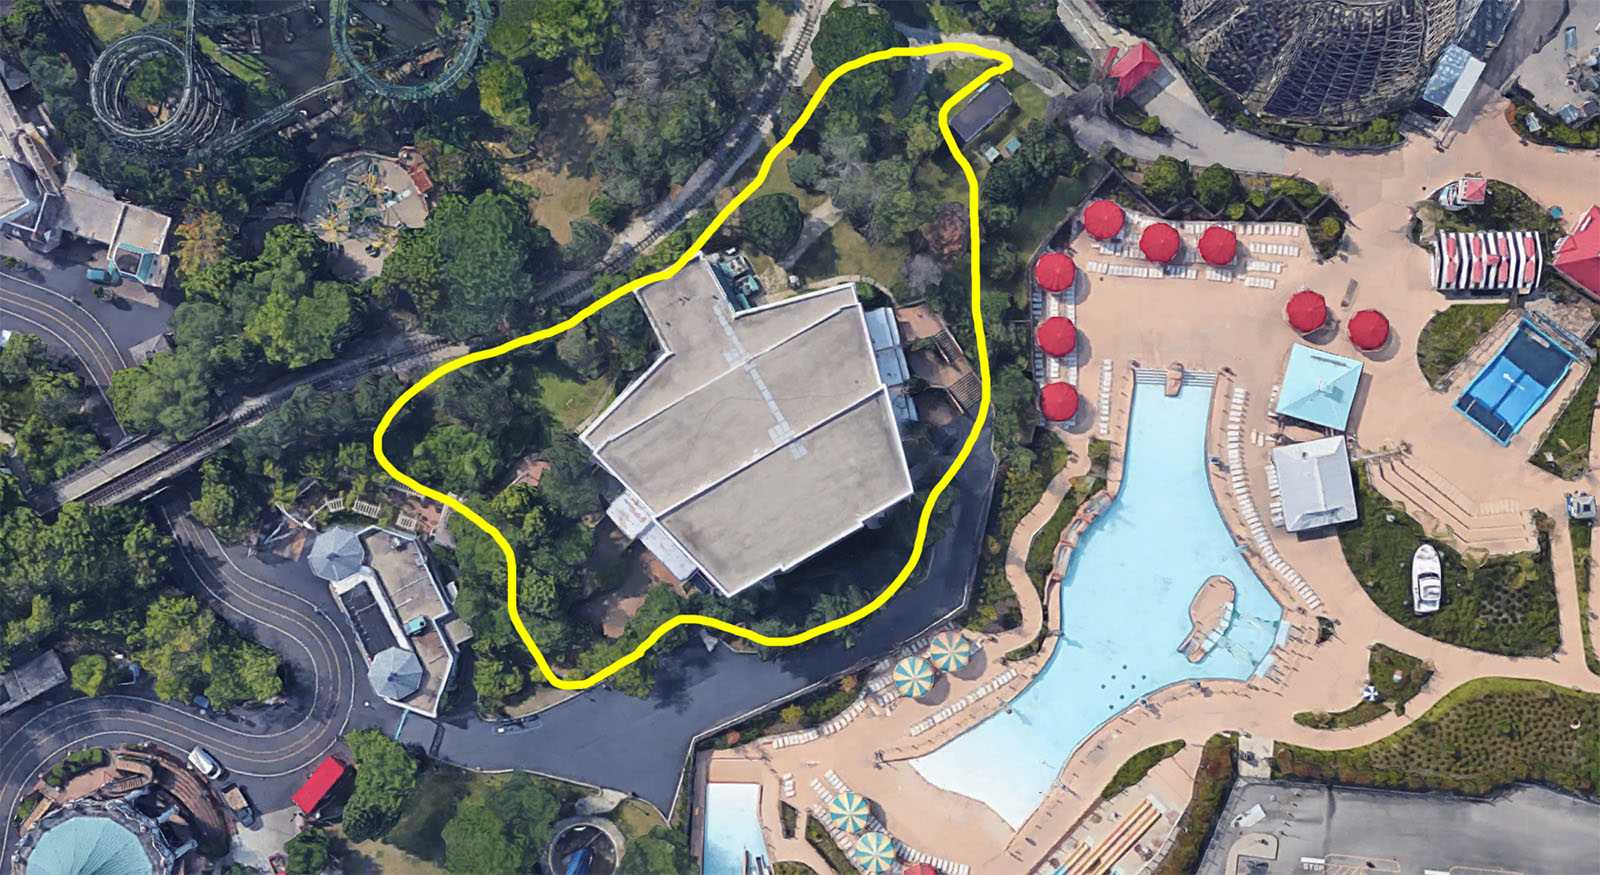 Map Of 6 Flags Great America.Six Flags Great America 2019 Theories And Land Clearing Updated